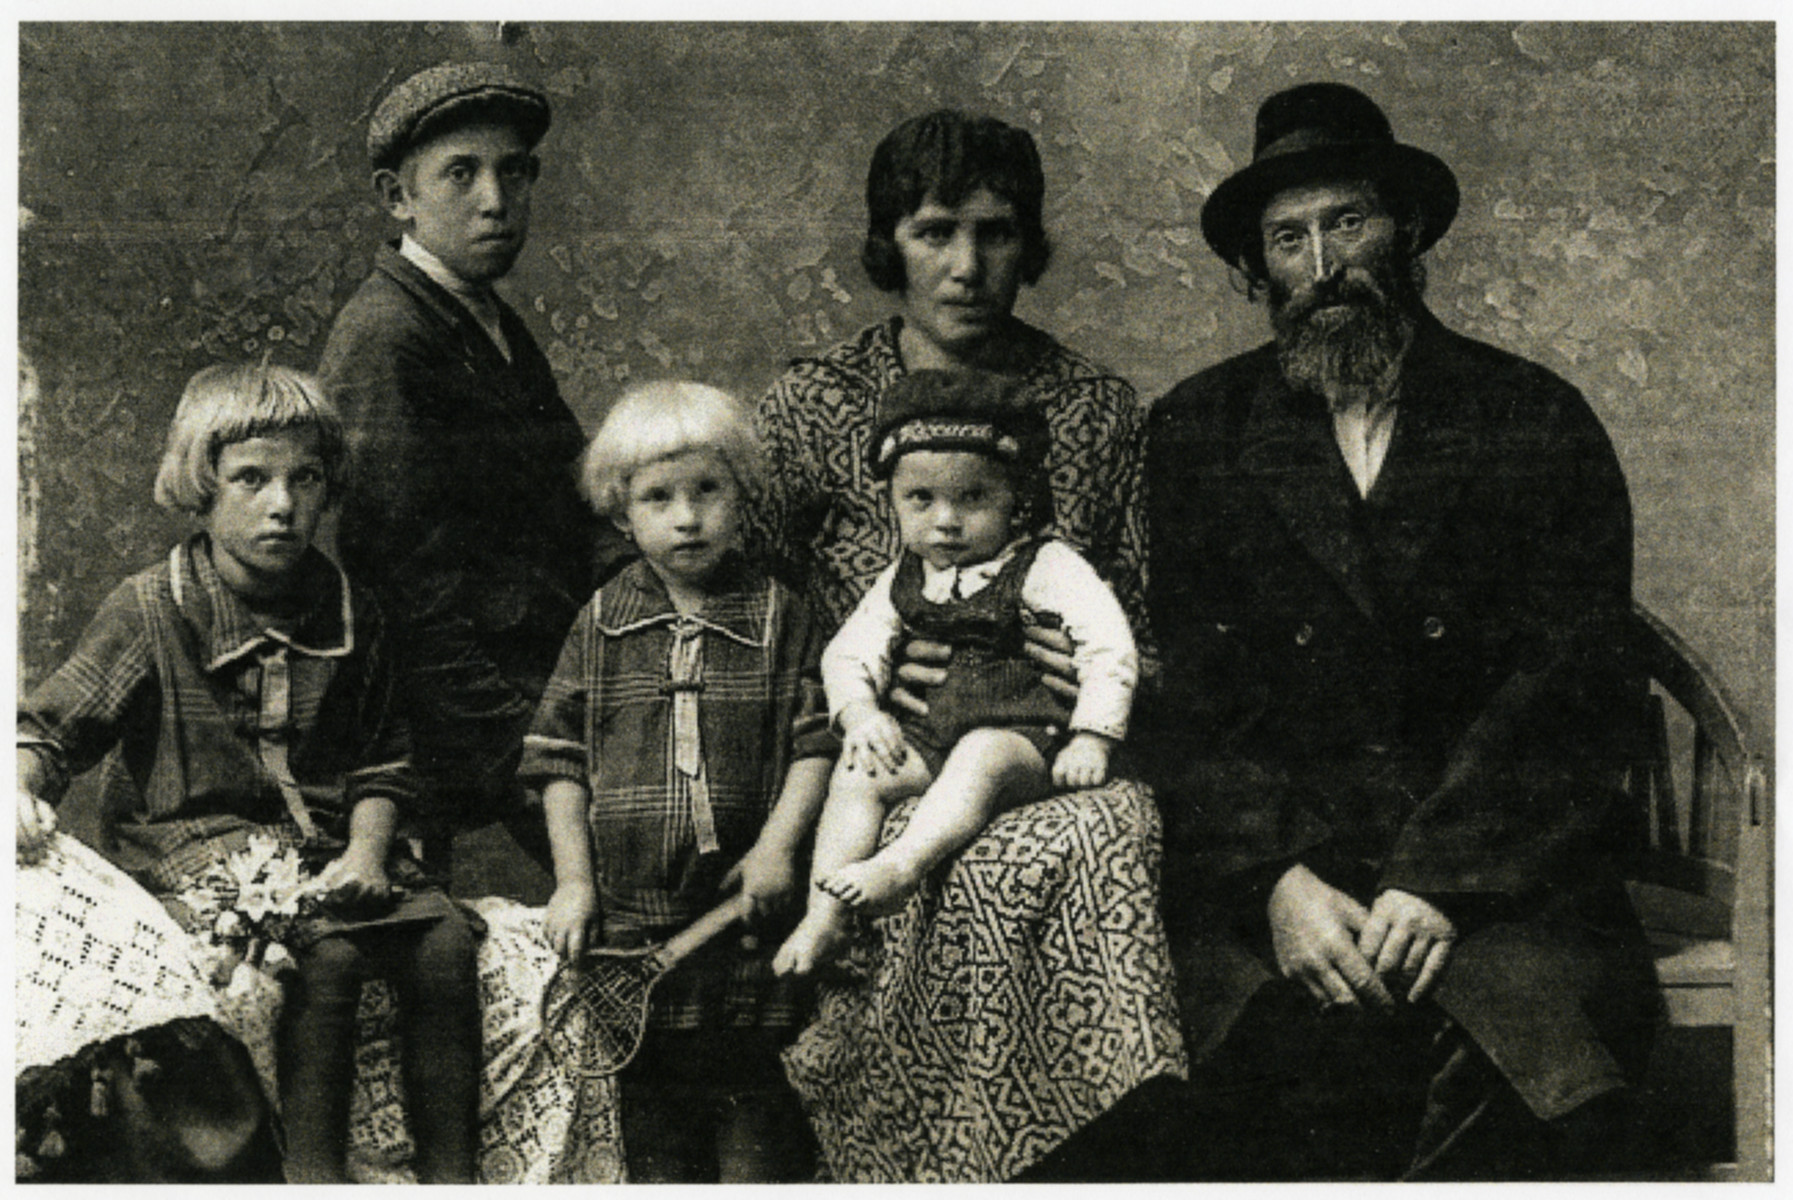 Prewar studio portrait of the Berkowitz family.  Pictured from left to right:  Toby, a stepbrother who died before the war, Leah, Fradel, Herschel (seated on her lap) and Eliyahu.